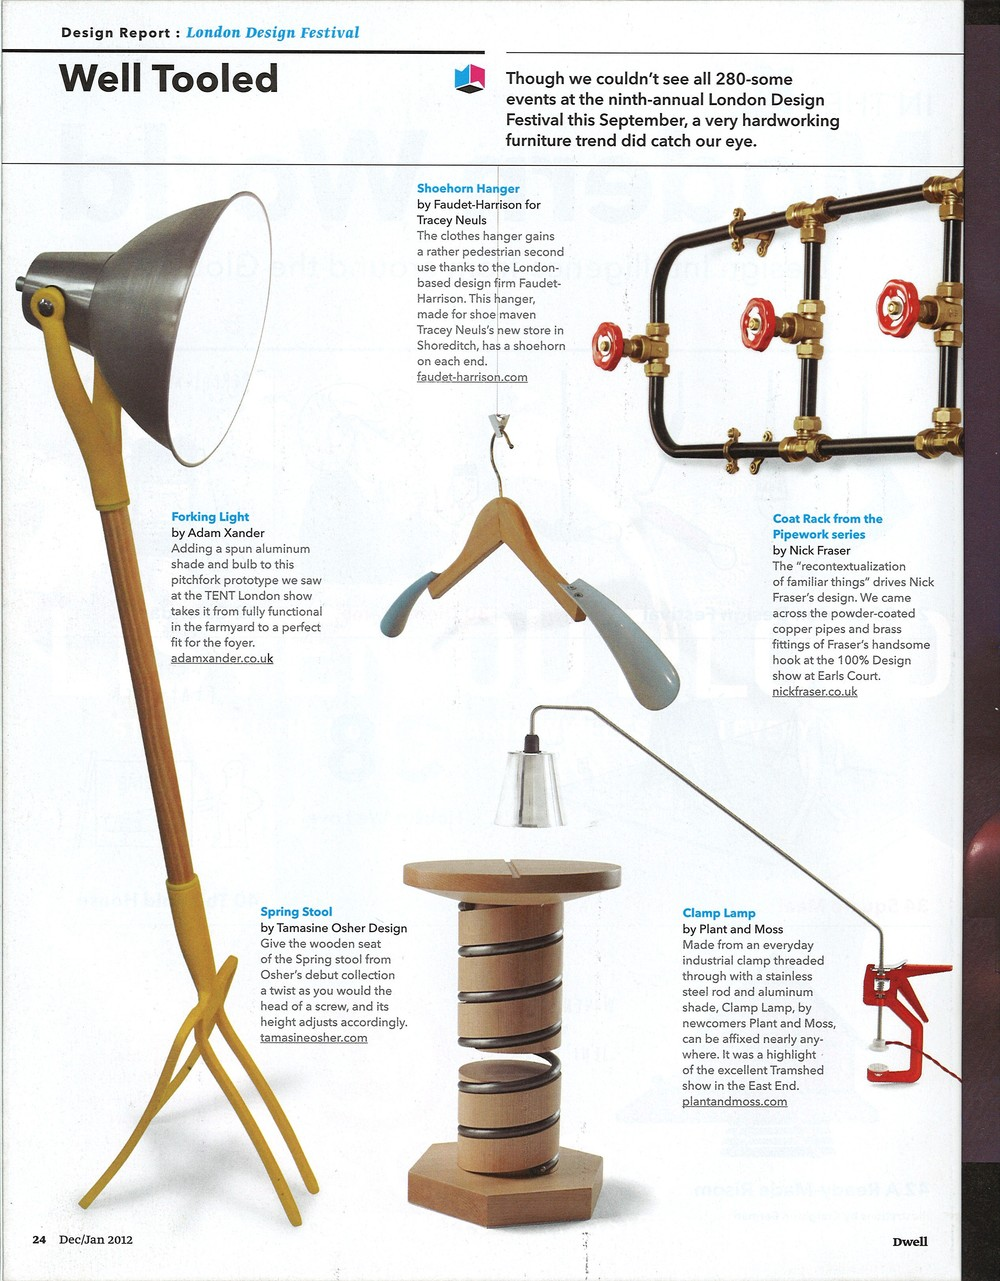 Publication: Dwell Magazine, Dec/Jan 2012